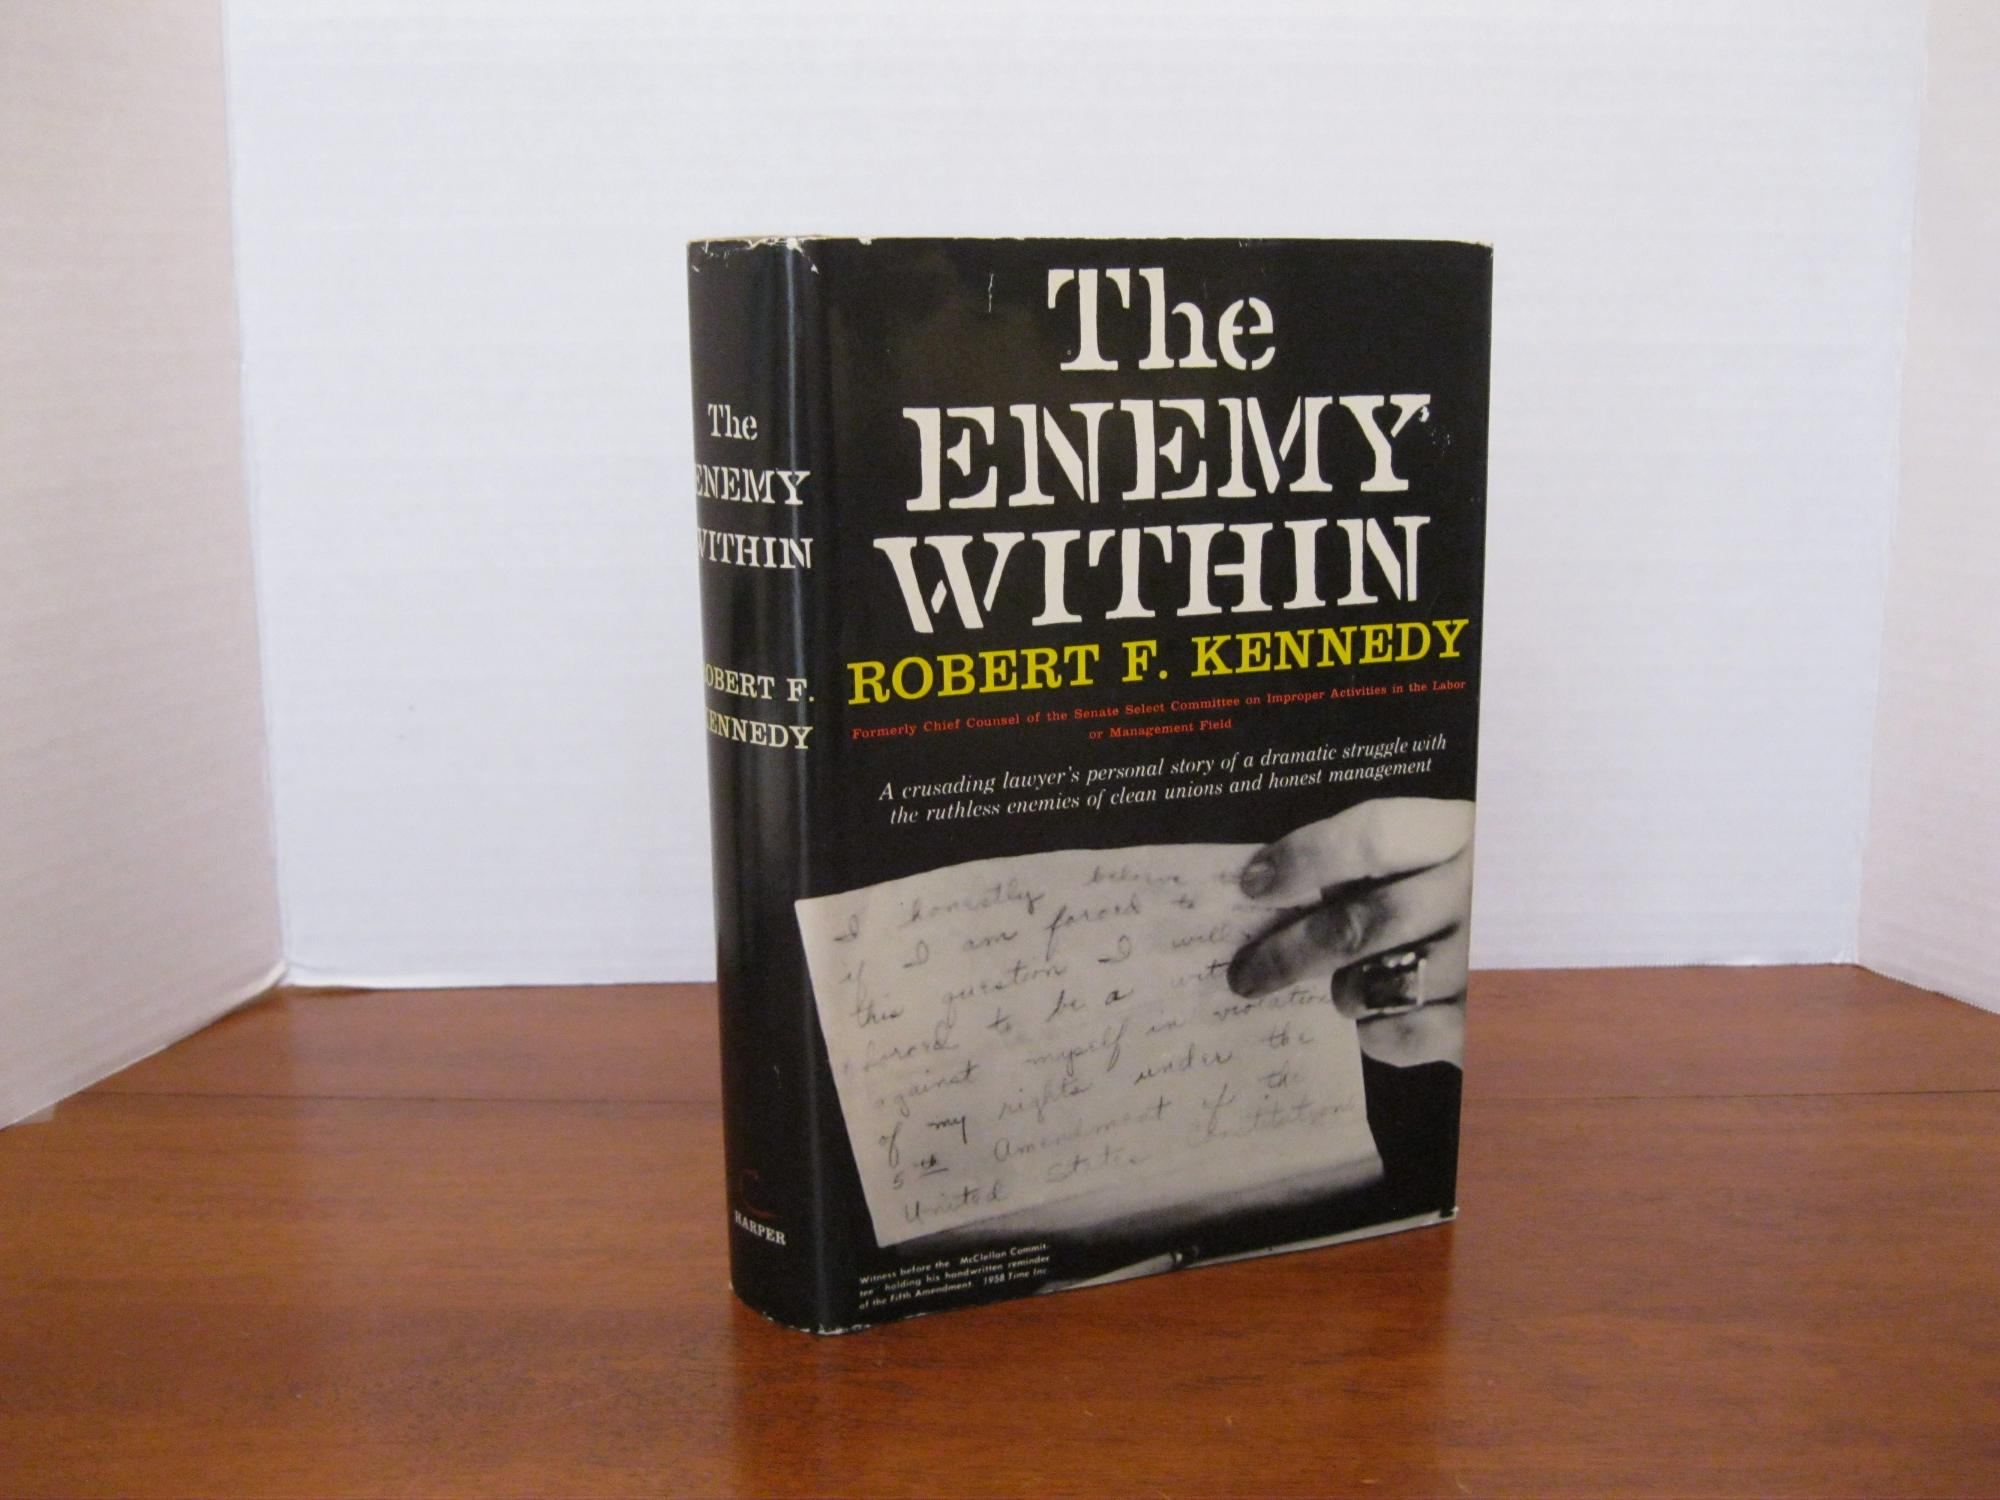 THE_ENEMY_WITHIN_KENNEDY_ROBERT_F_Very_Good_Hardcover